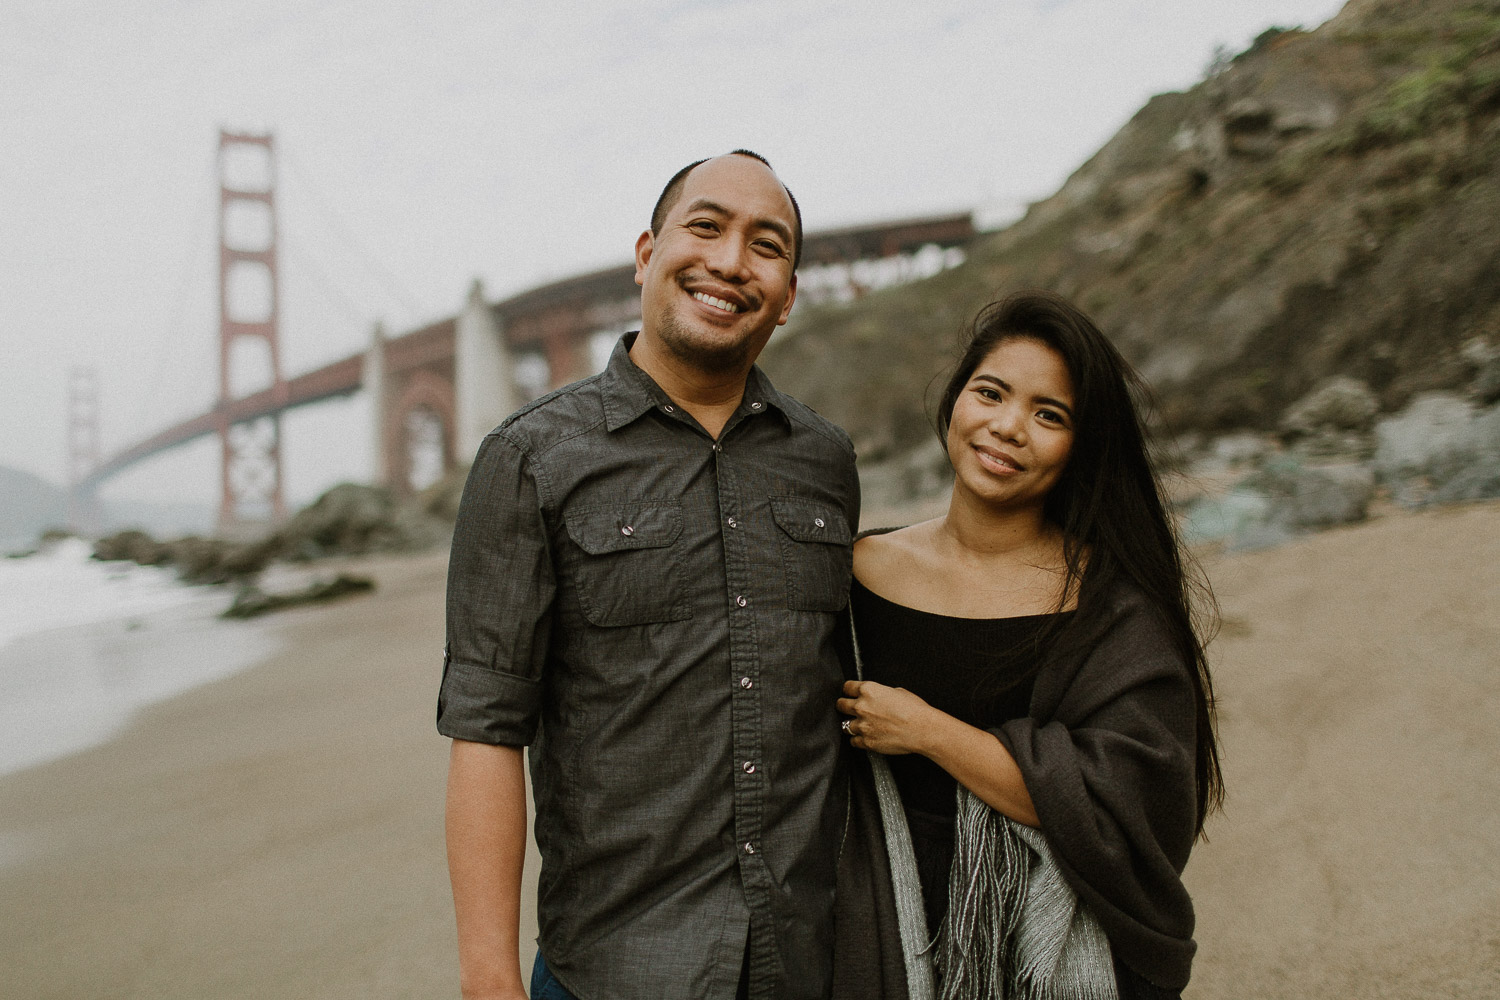 Image of Asian Couple Smiles Together on the Beach